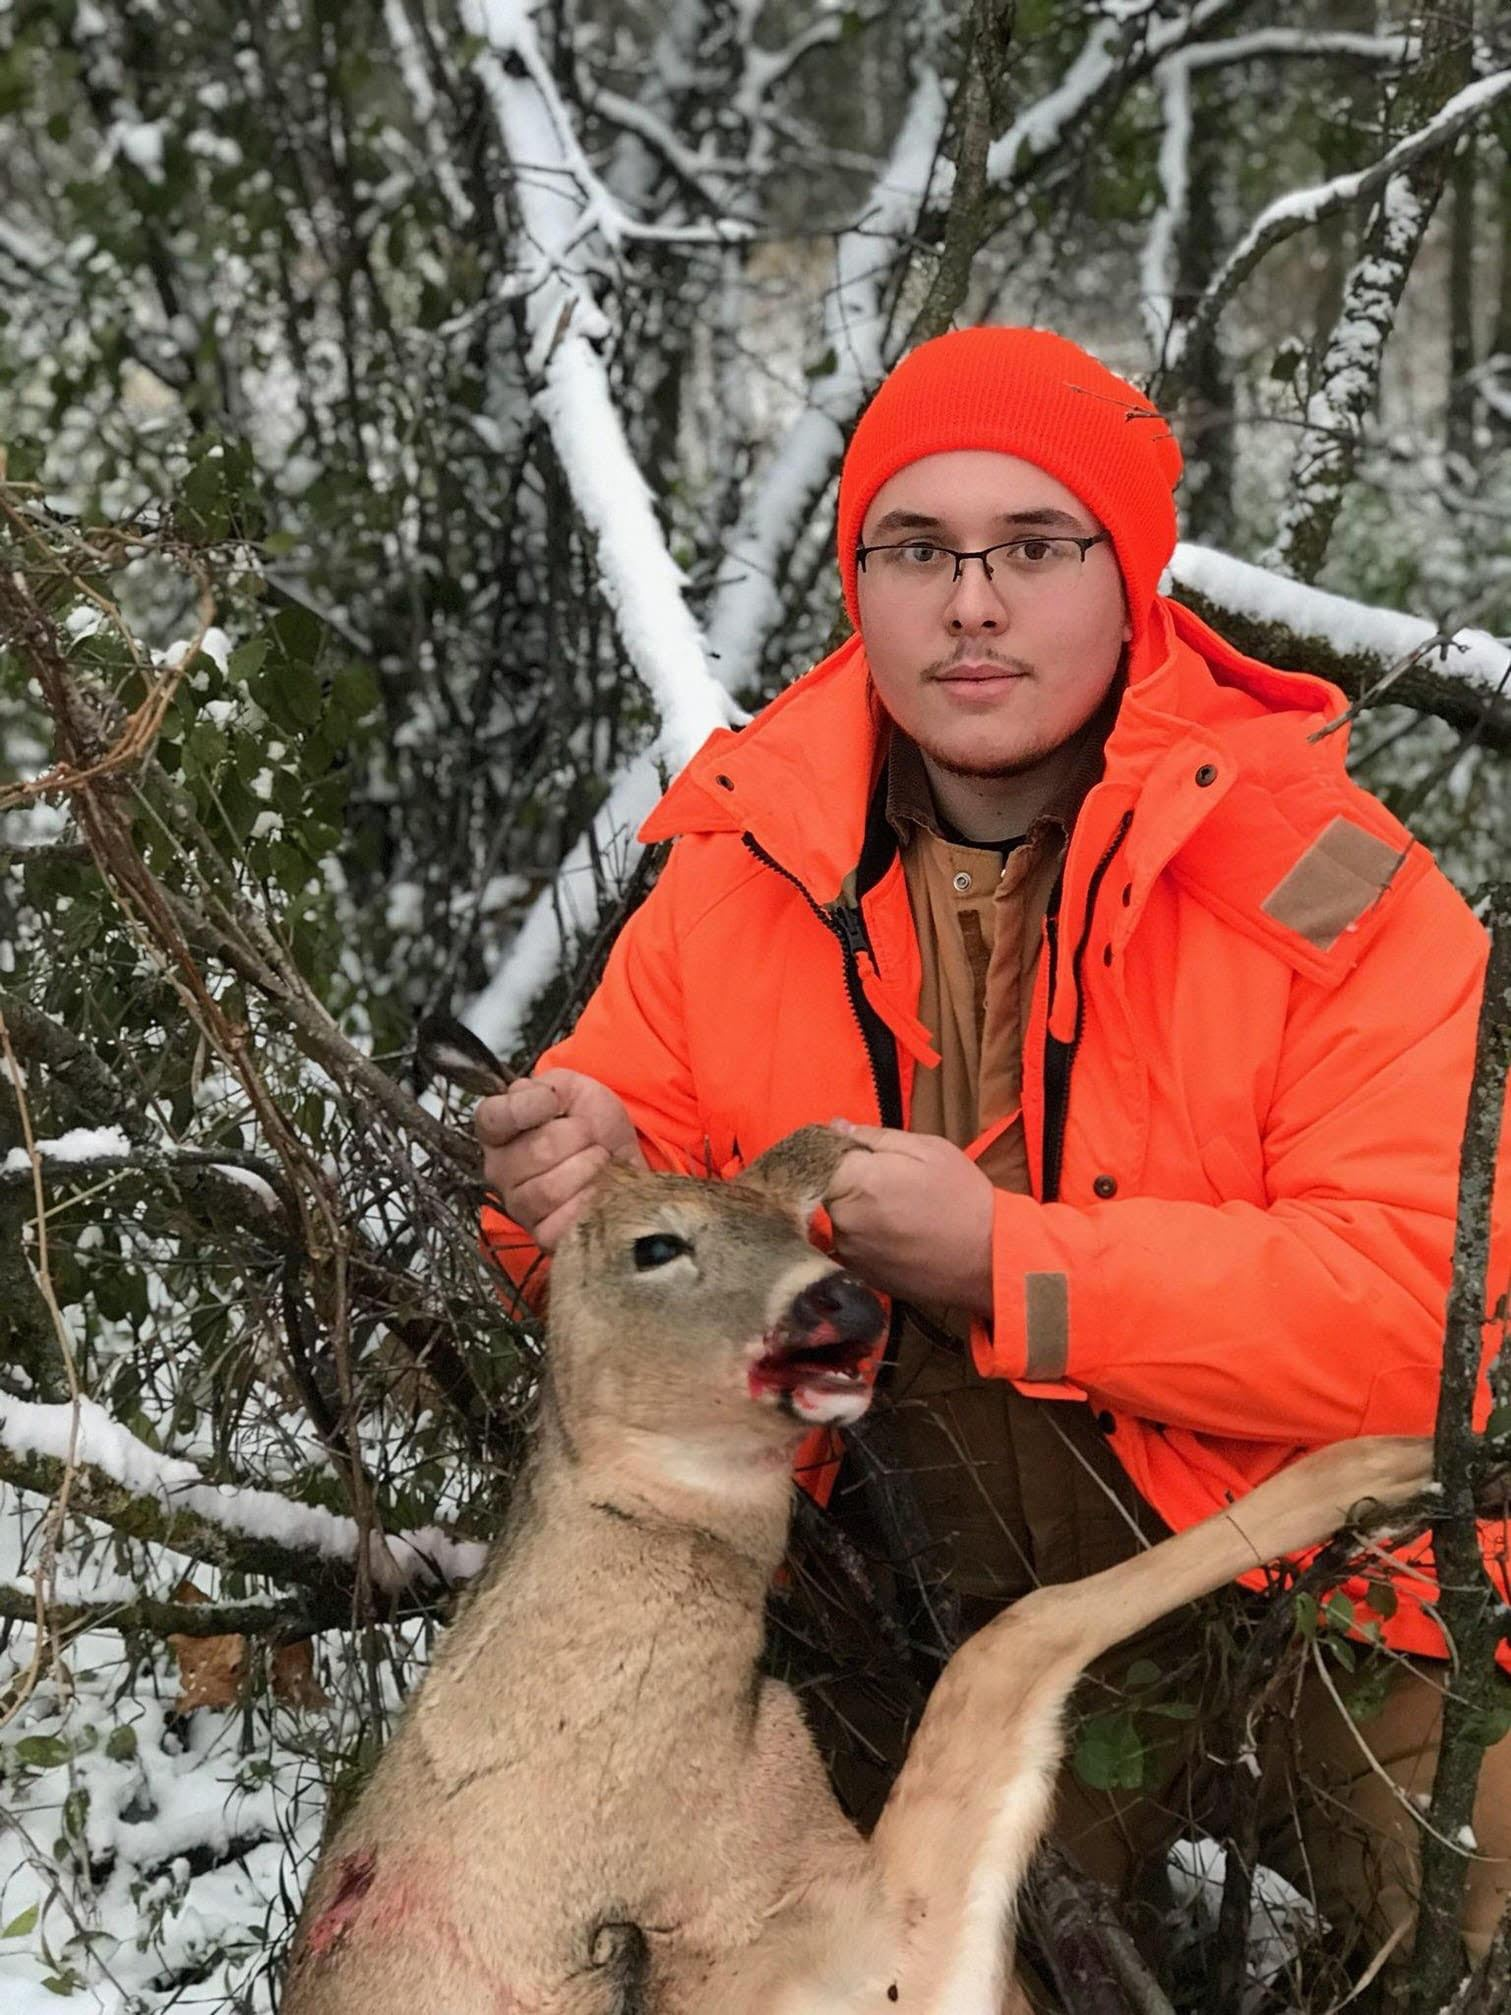 Rick Brown Takes His Nephew Hunting for First Deer - TLO Outdoors